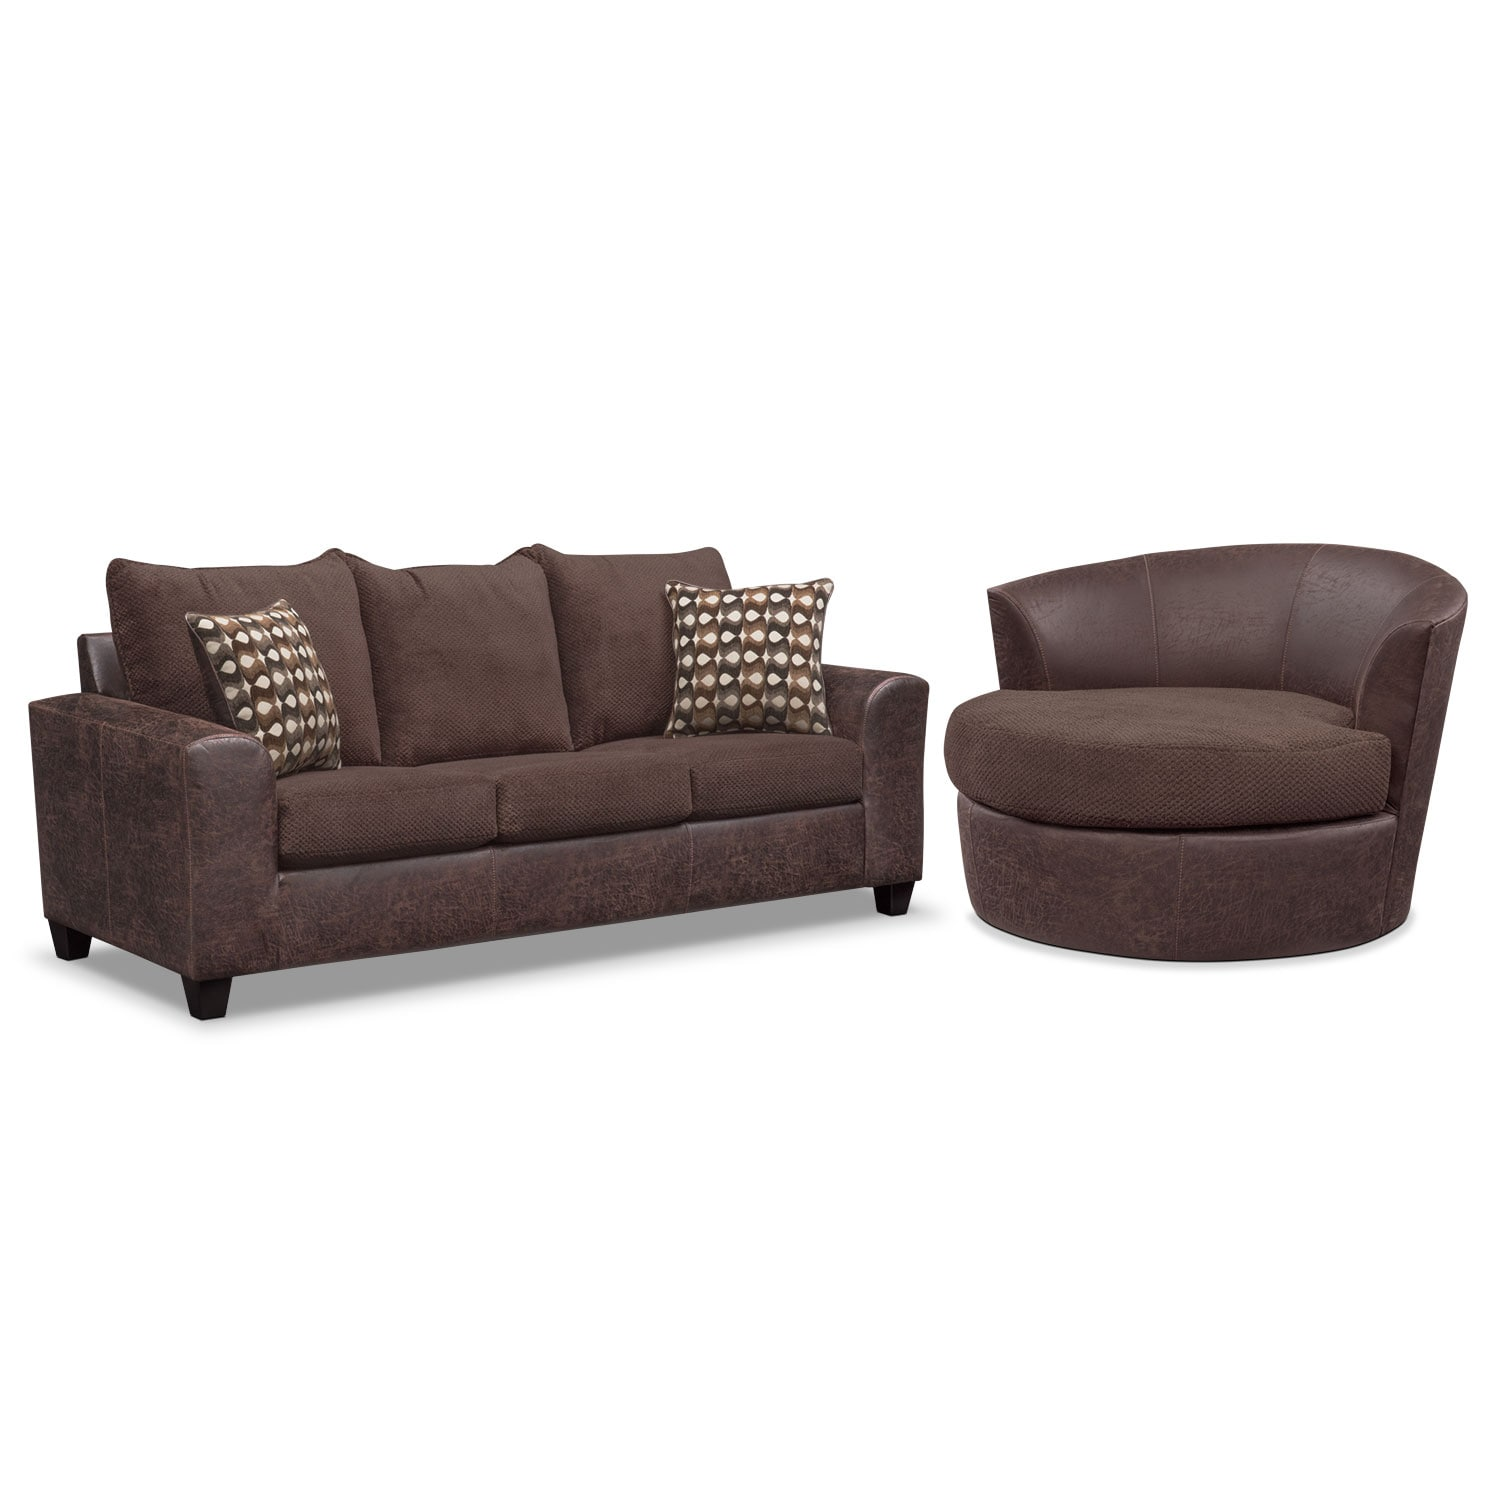 Living Room Furniture - Brando Sofa and Swivel Chair Set - Chocolate